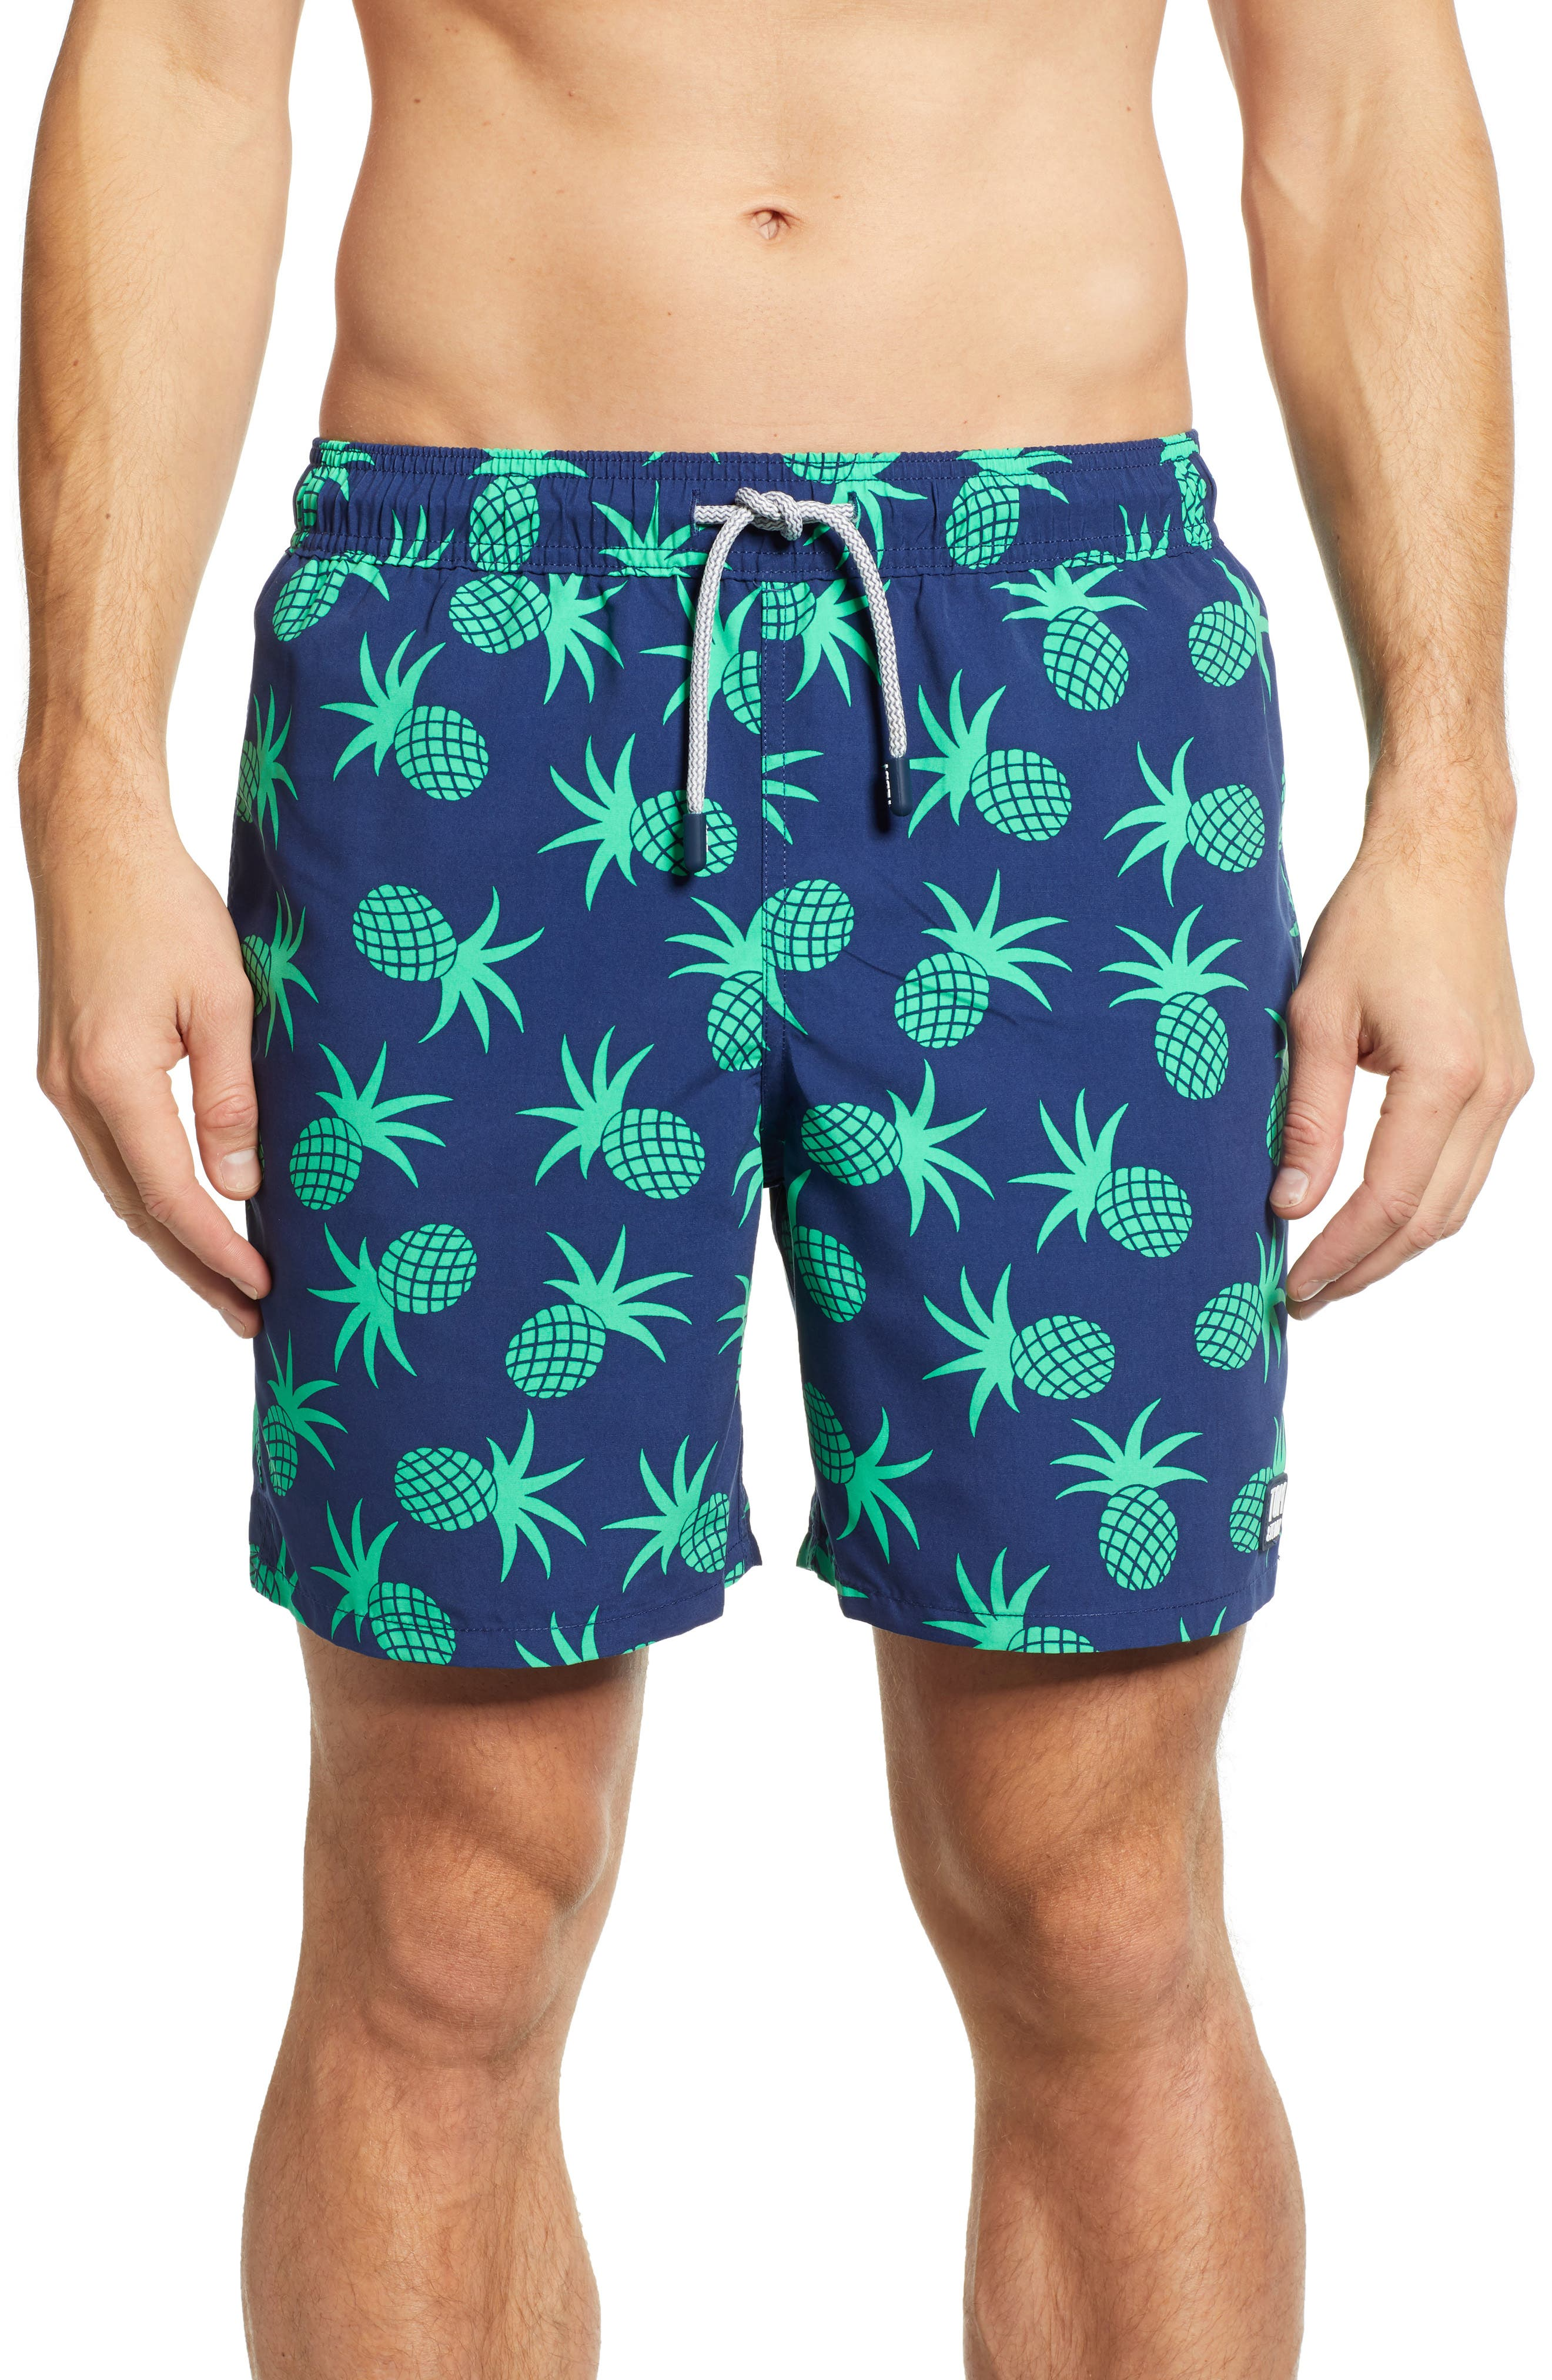 Pineapple Print Swim Trunks,                             Main thumbnail 1, color,                             400